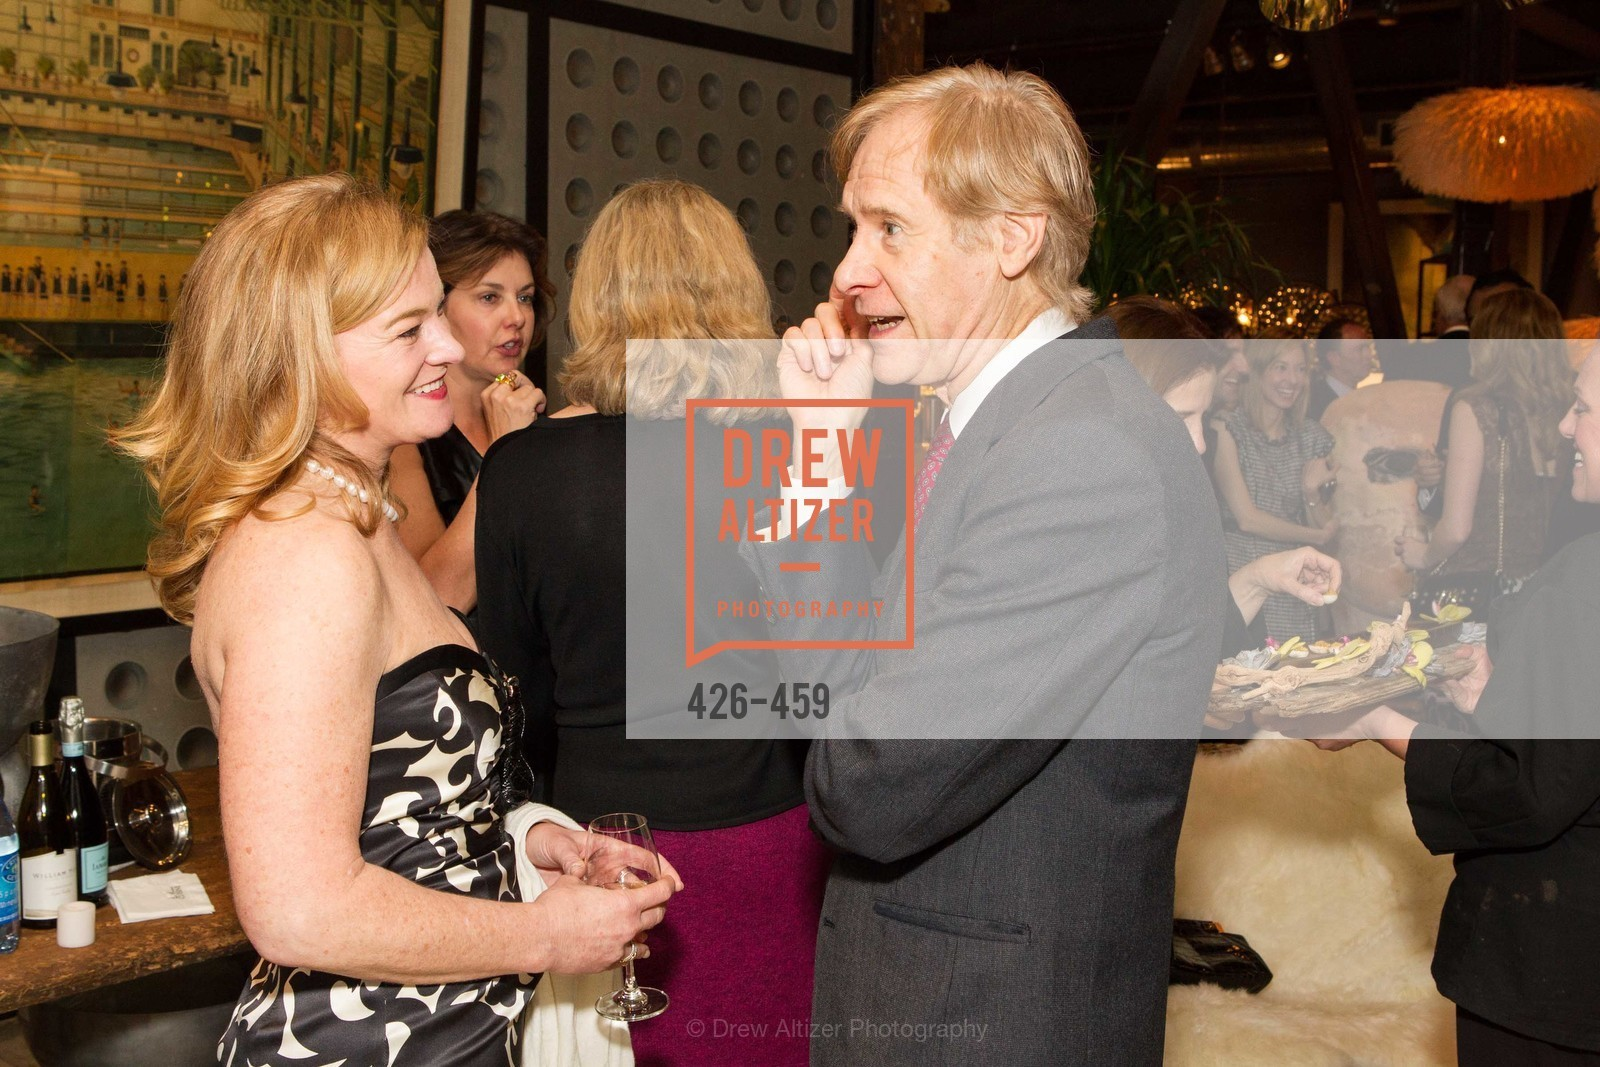 Renee Rodman, John Kerns, 2014 SAN FRANCISCO BALLET OPENING NIGHT GALA Patron and Sponsor Reception, US. US, January 14th, 2014,Drew Altizer, Drew Altizer Photography, full-service agency, private events, San Francisco photographer, photographer california